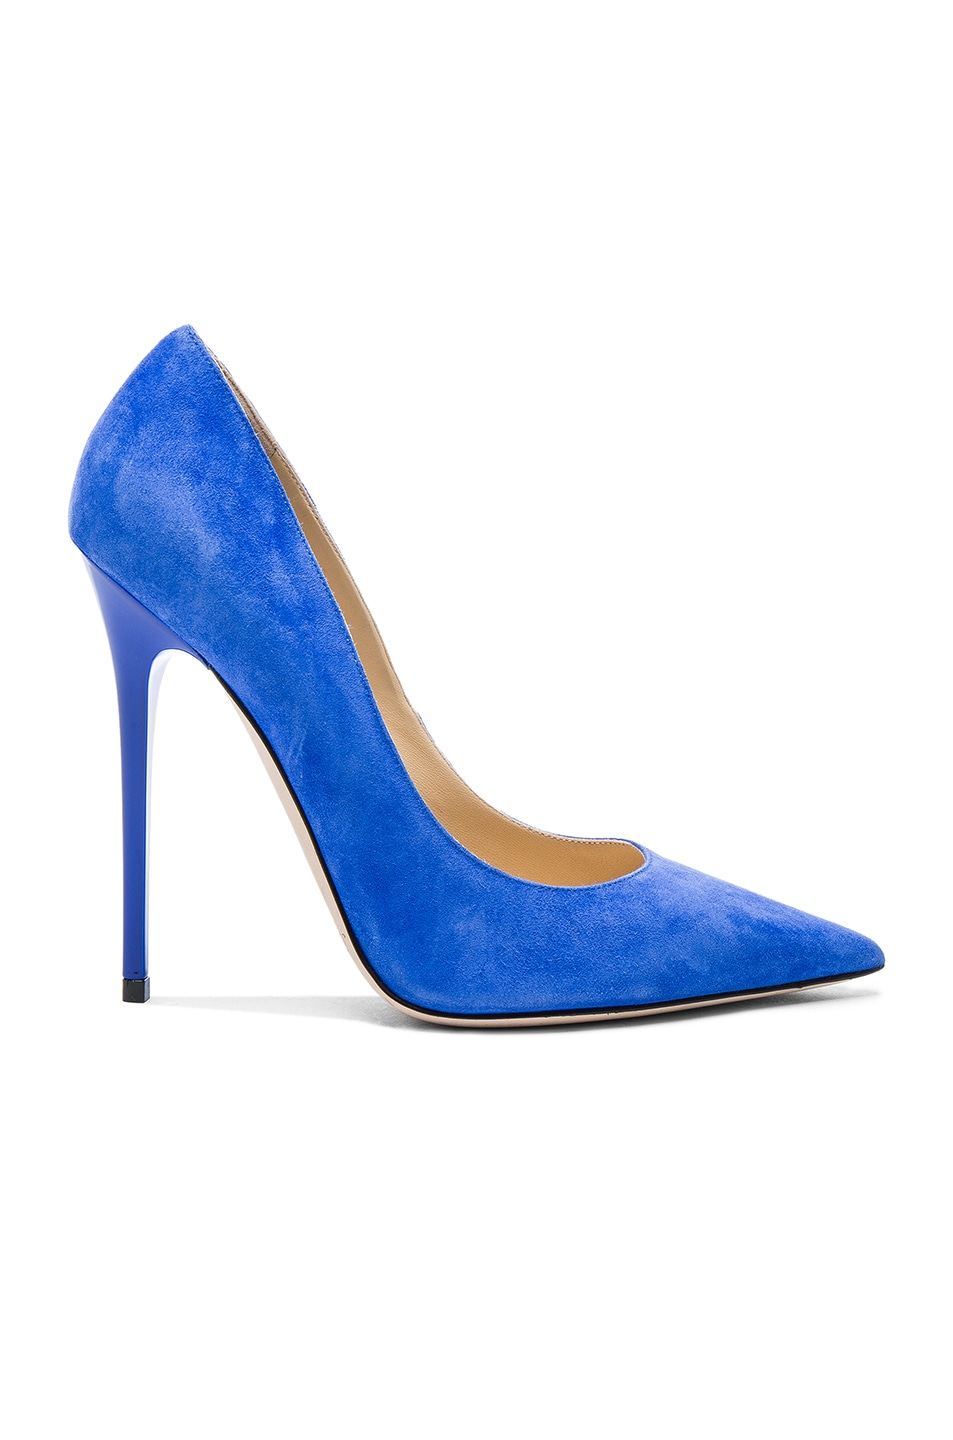 Image 1 of Jimmy Choo Suede Anouk Pumps in Cobalt